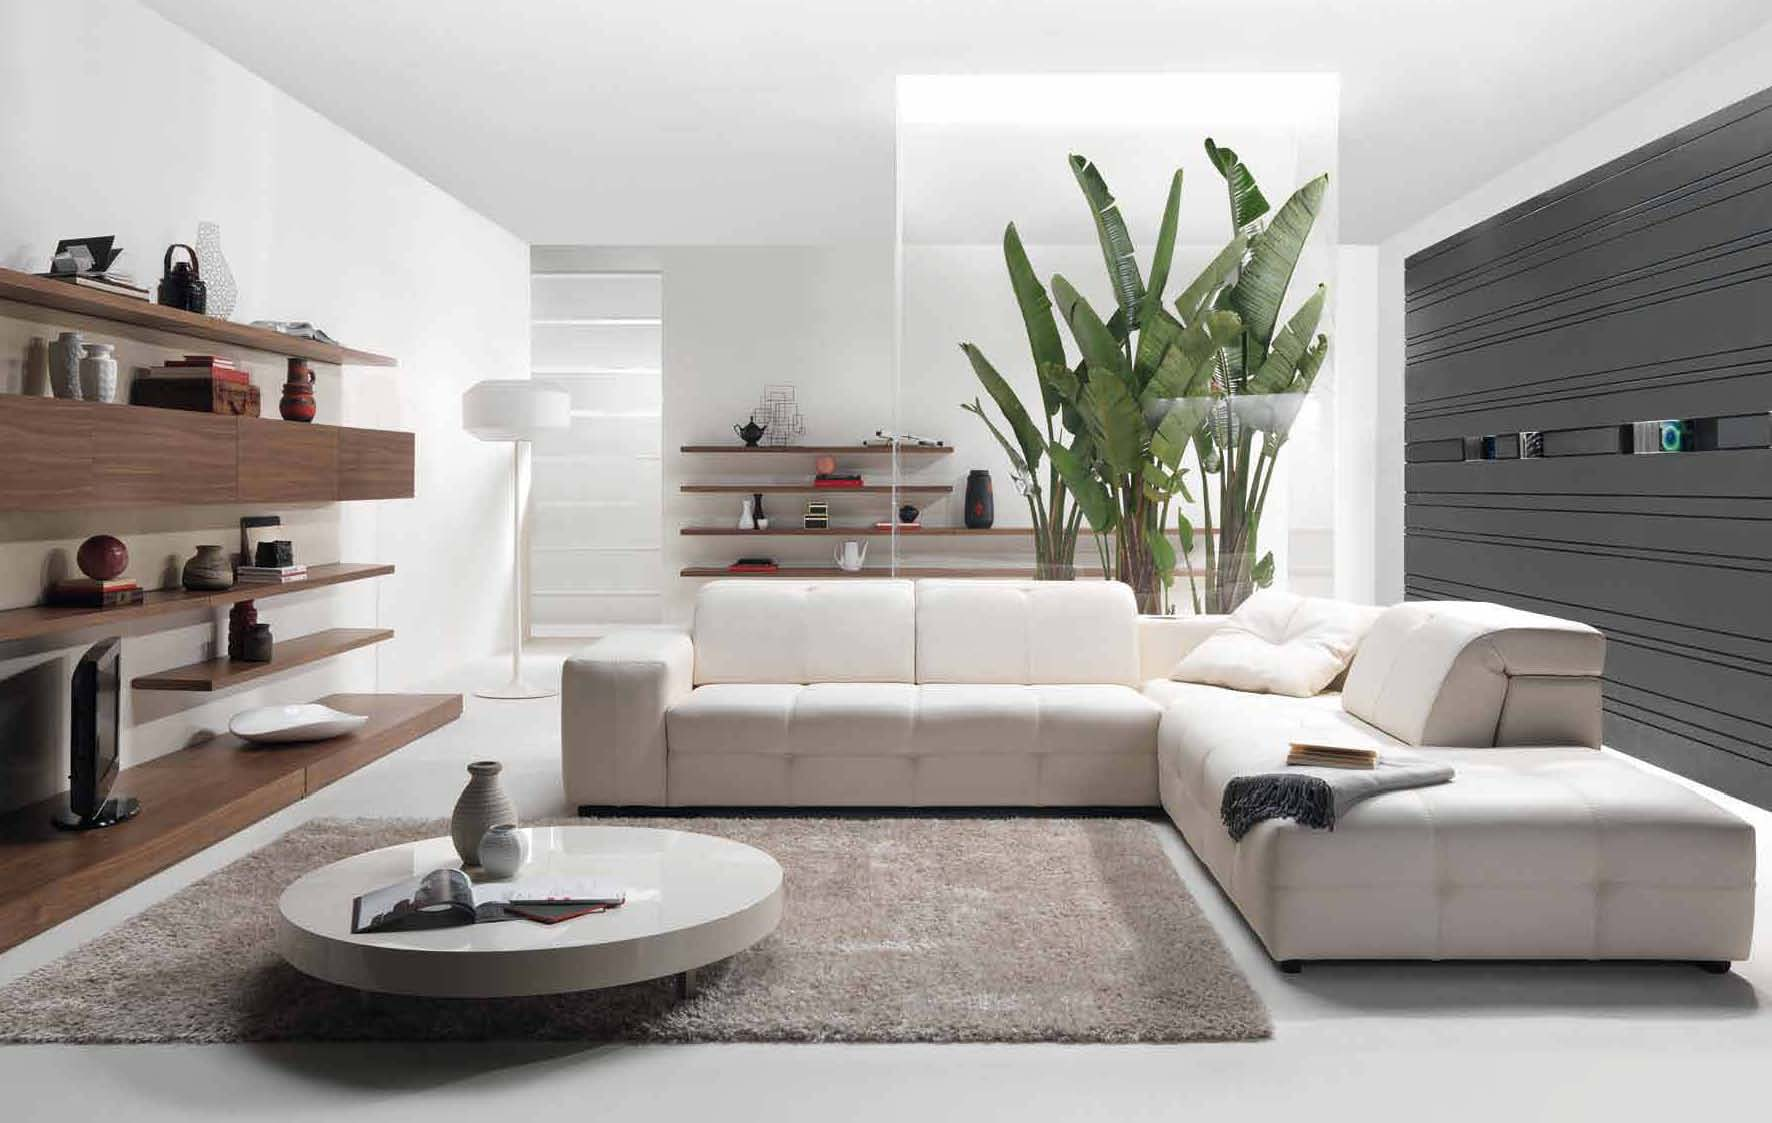 Modern Style Living Room 7 modern decorating style must-haves - decorilla